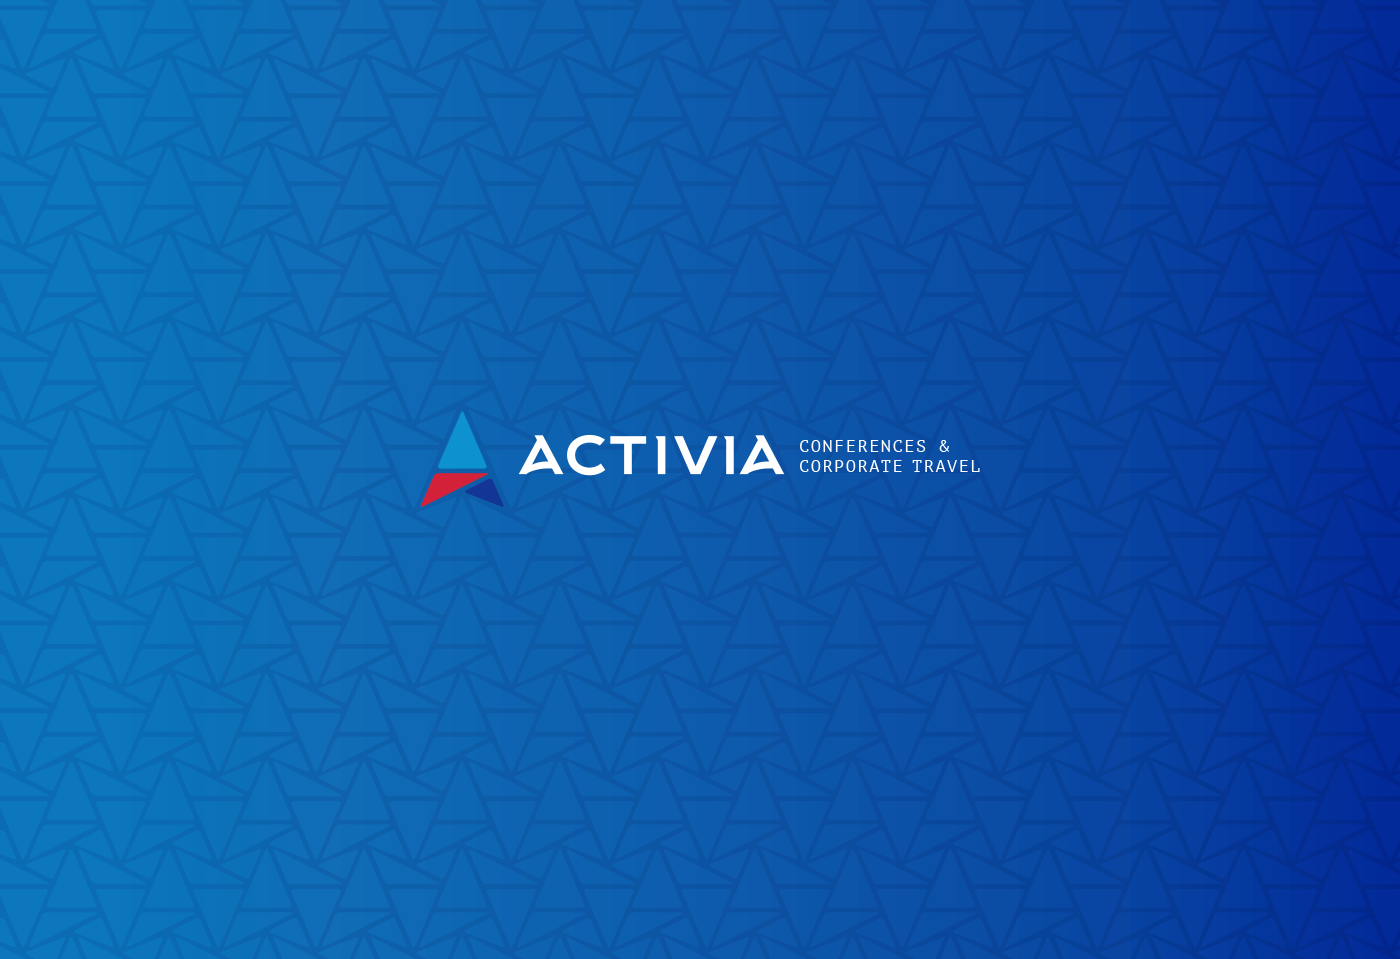 Marca | Activia Conferences & Corporate Travel - Desenvolvimento Drupal - Layout Responsivo